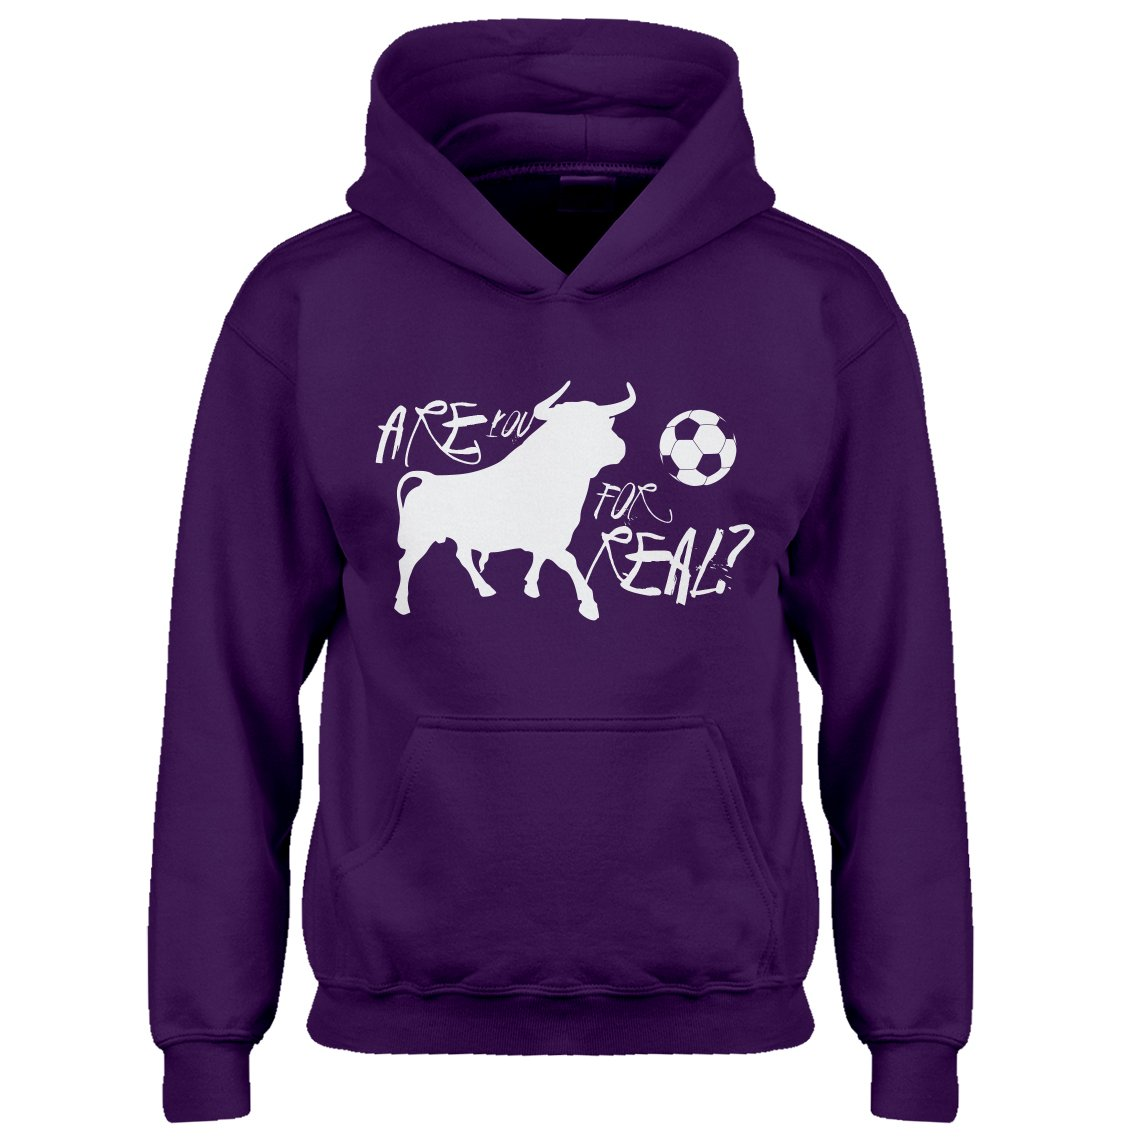 Indica Plateau Youth are You for Real Kids Hoodie